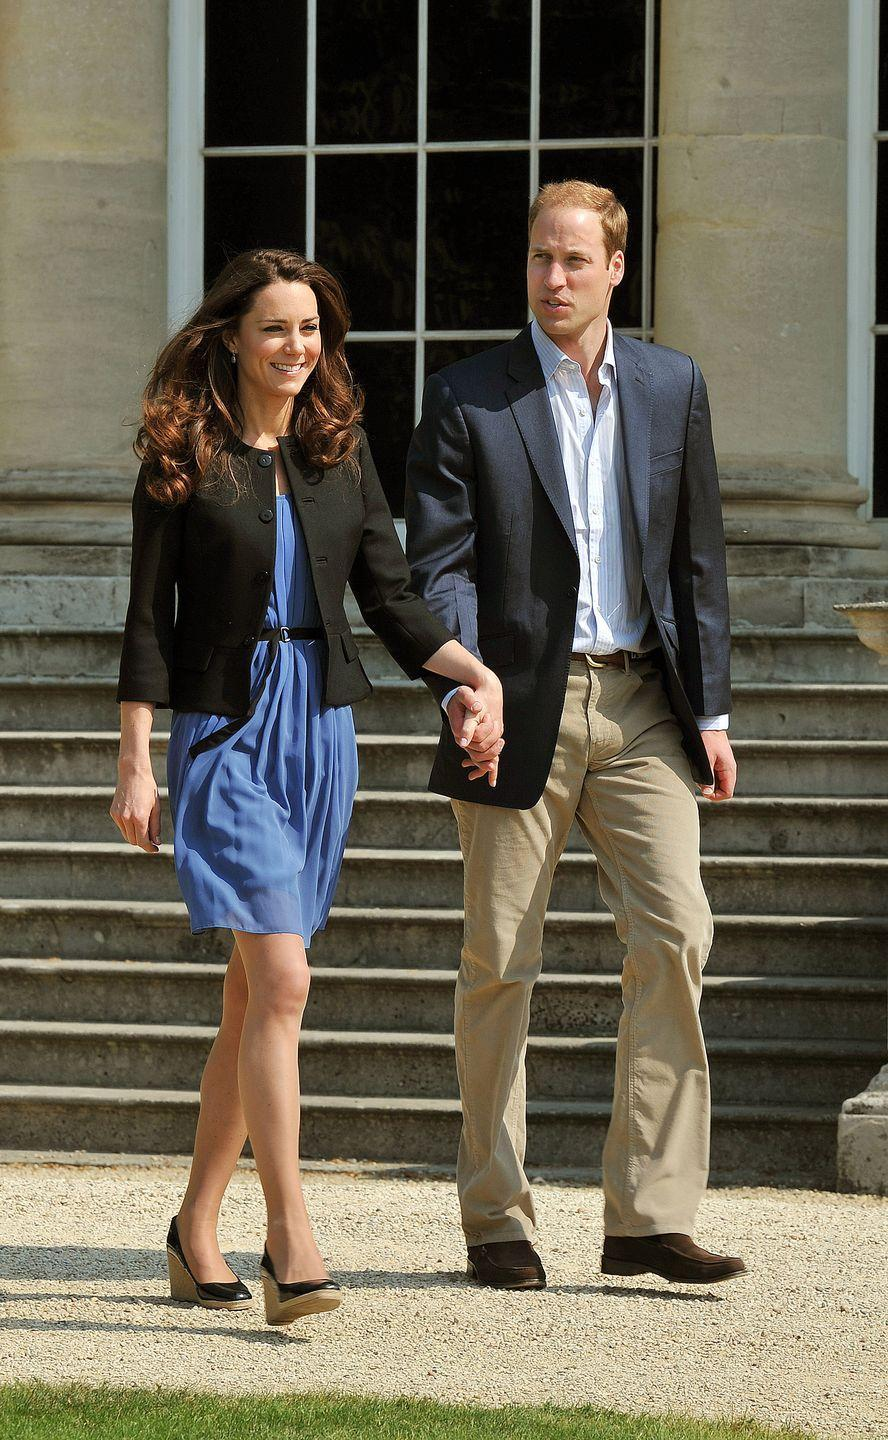 """<p>The younger generations are more relaxed about this royal rule, however the future King and Queen are still very selective about when they choose to hold hands in public.</p><p><strong>RELATED: </strong><a href=""""https://www.goodhousekeeping.com/life/relationships/g2440/prince-william-and-duchess-catherine-first-four-years-of-marriage/"""" rel=""""nofollow noopener"""" target=""""_blank"""" data-ylk=""""slk:Kate and William's Relationship Through the Years"""" class=""""link rapid-noclick-resp"""">Kate and William's Relationship Through the Years </a></p>"""